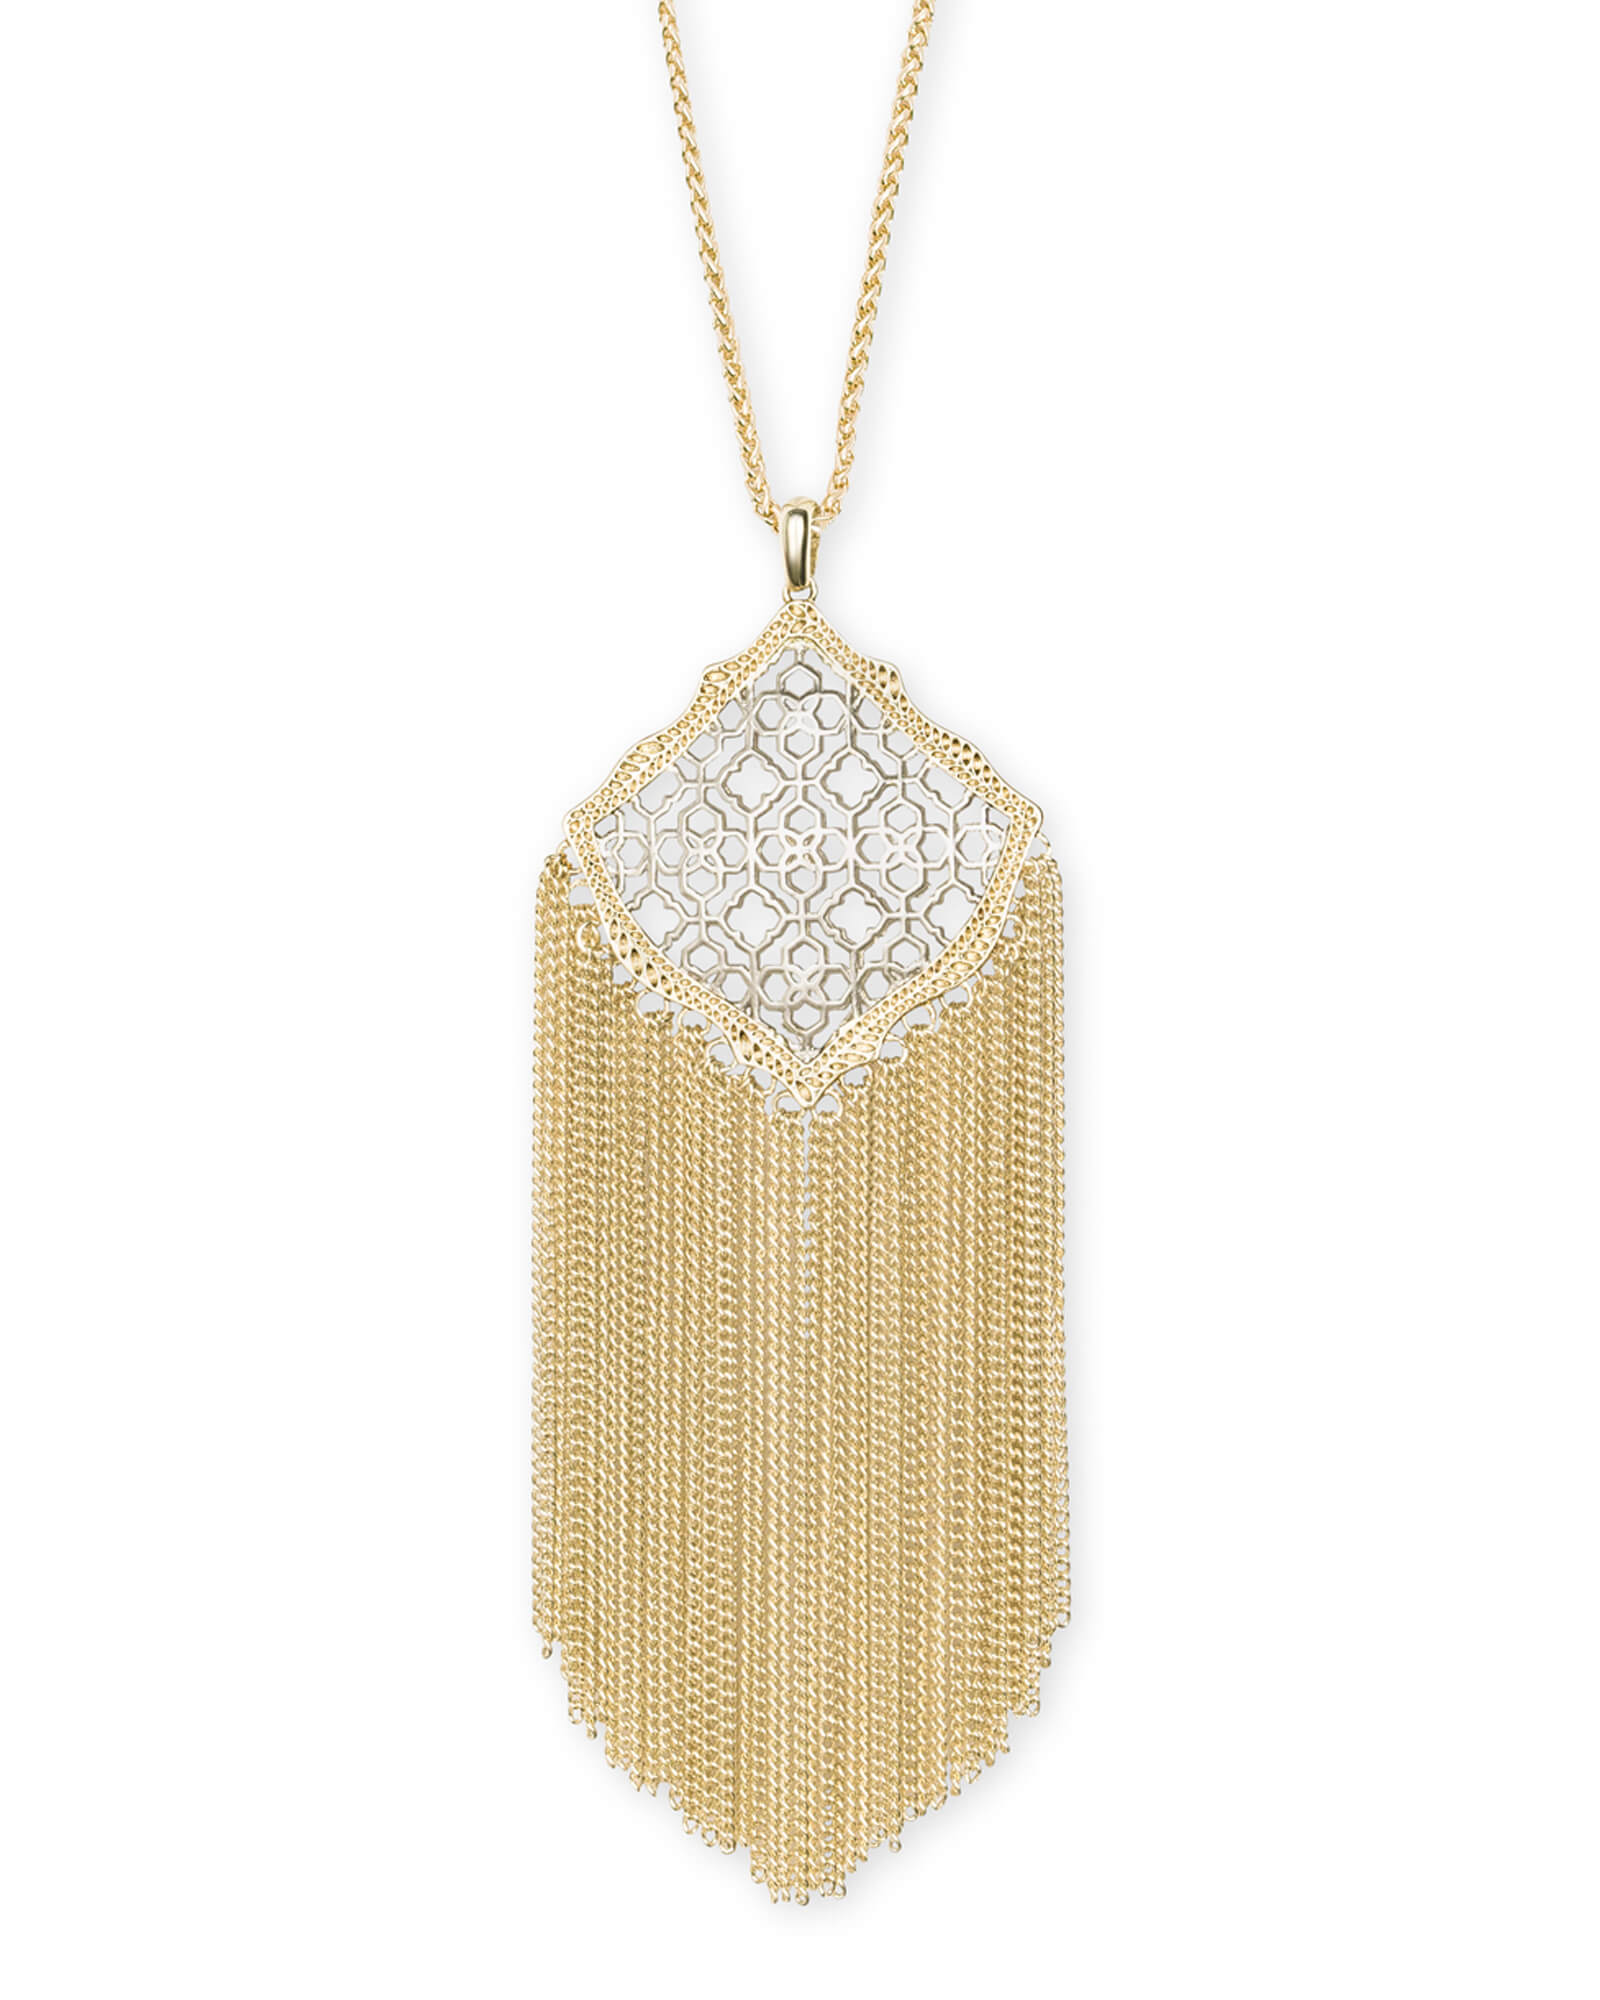 Kingston Gold Long Pendant Necklace in Silver Filigree Mix